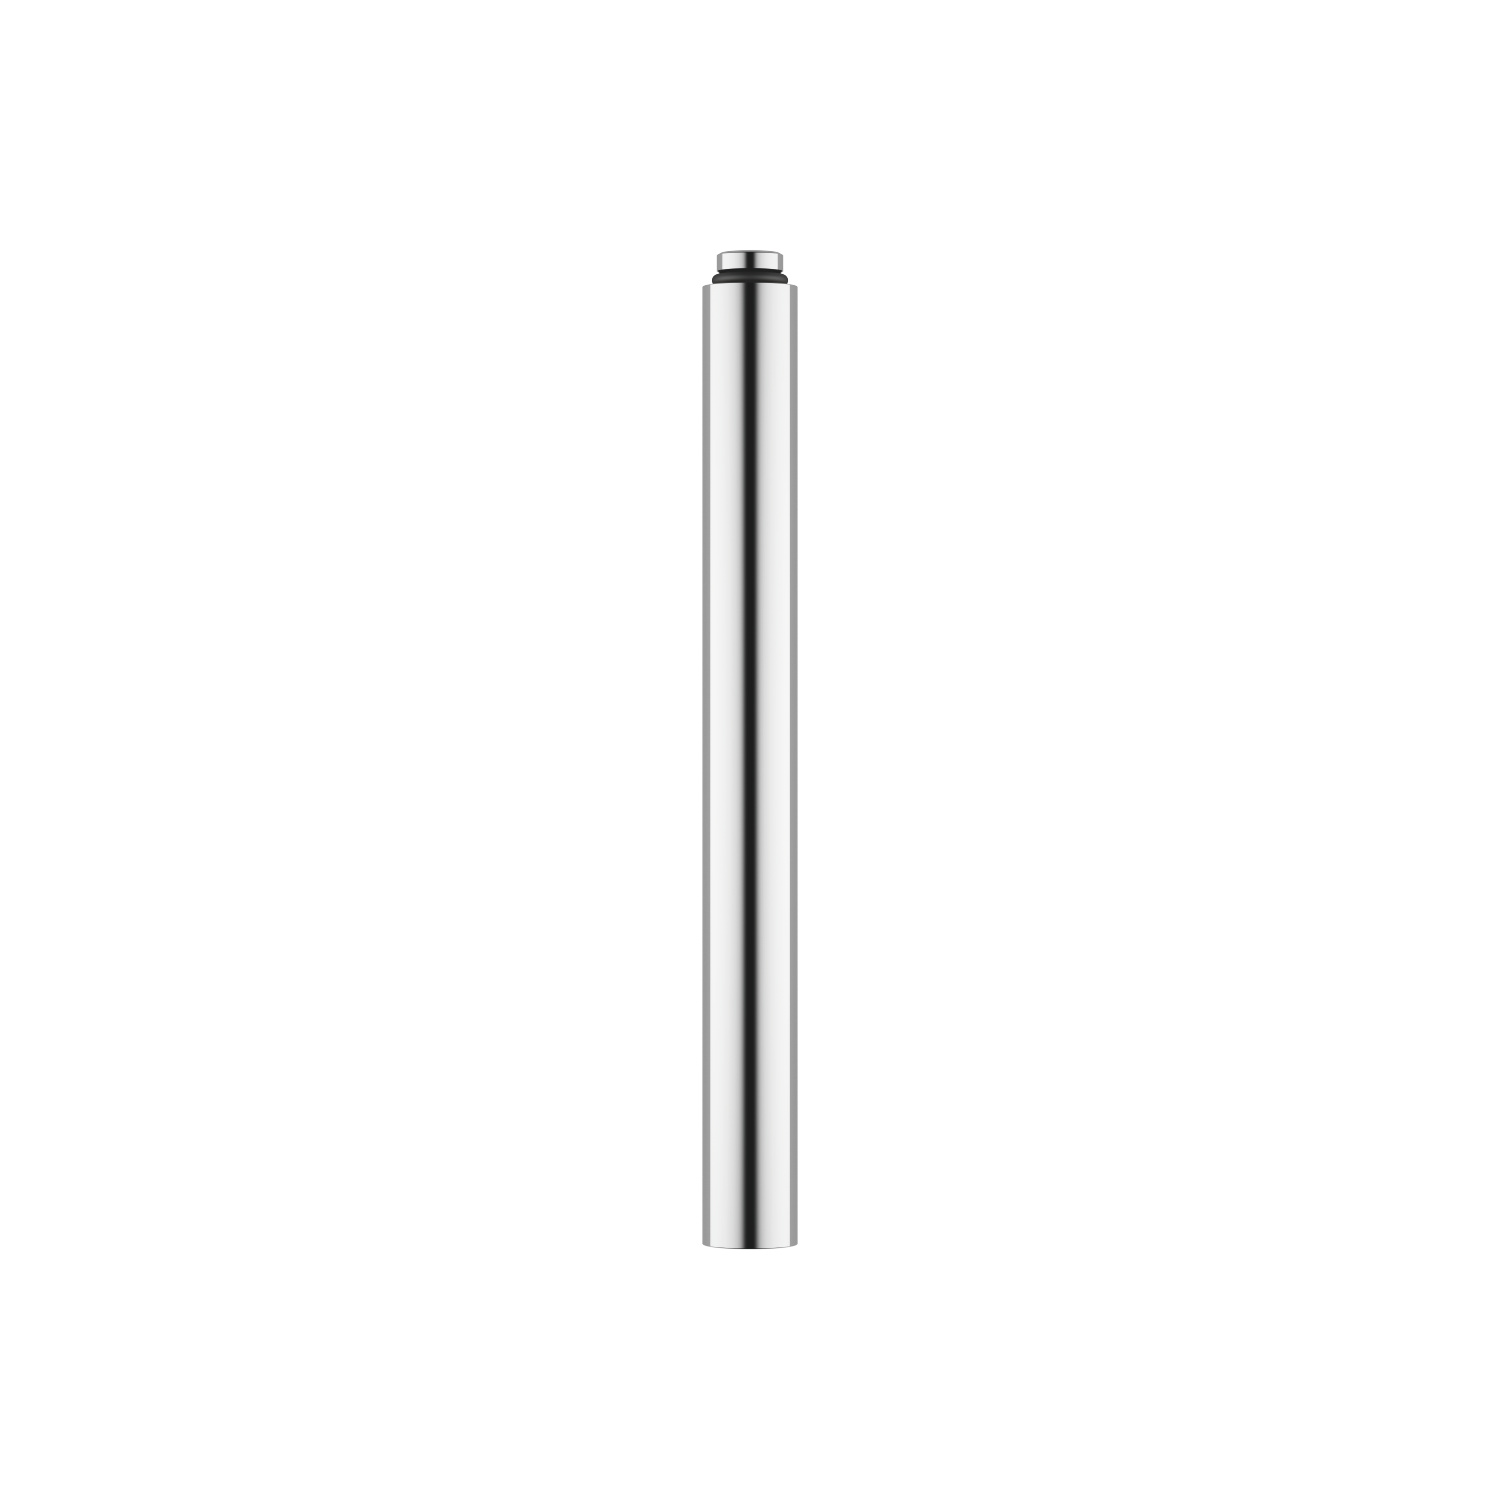 Extension for wall-mounted shower with fixed riser - polished chrome - 12 120 970-00